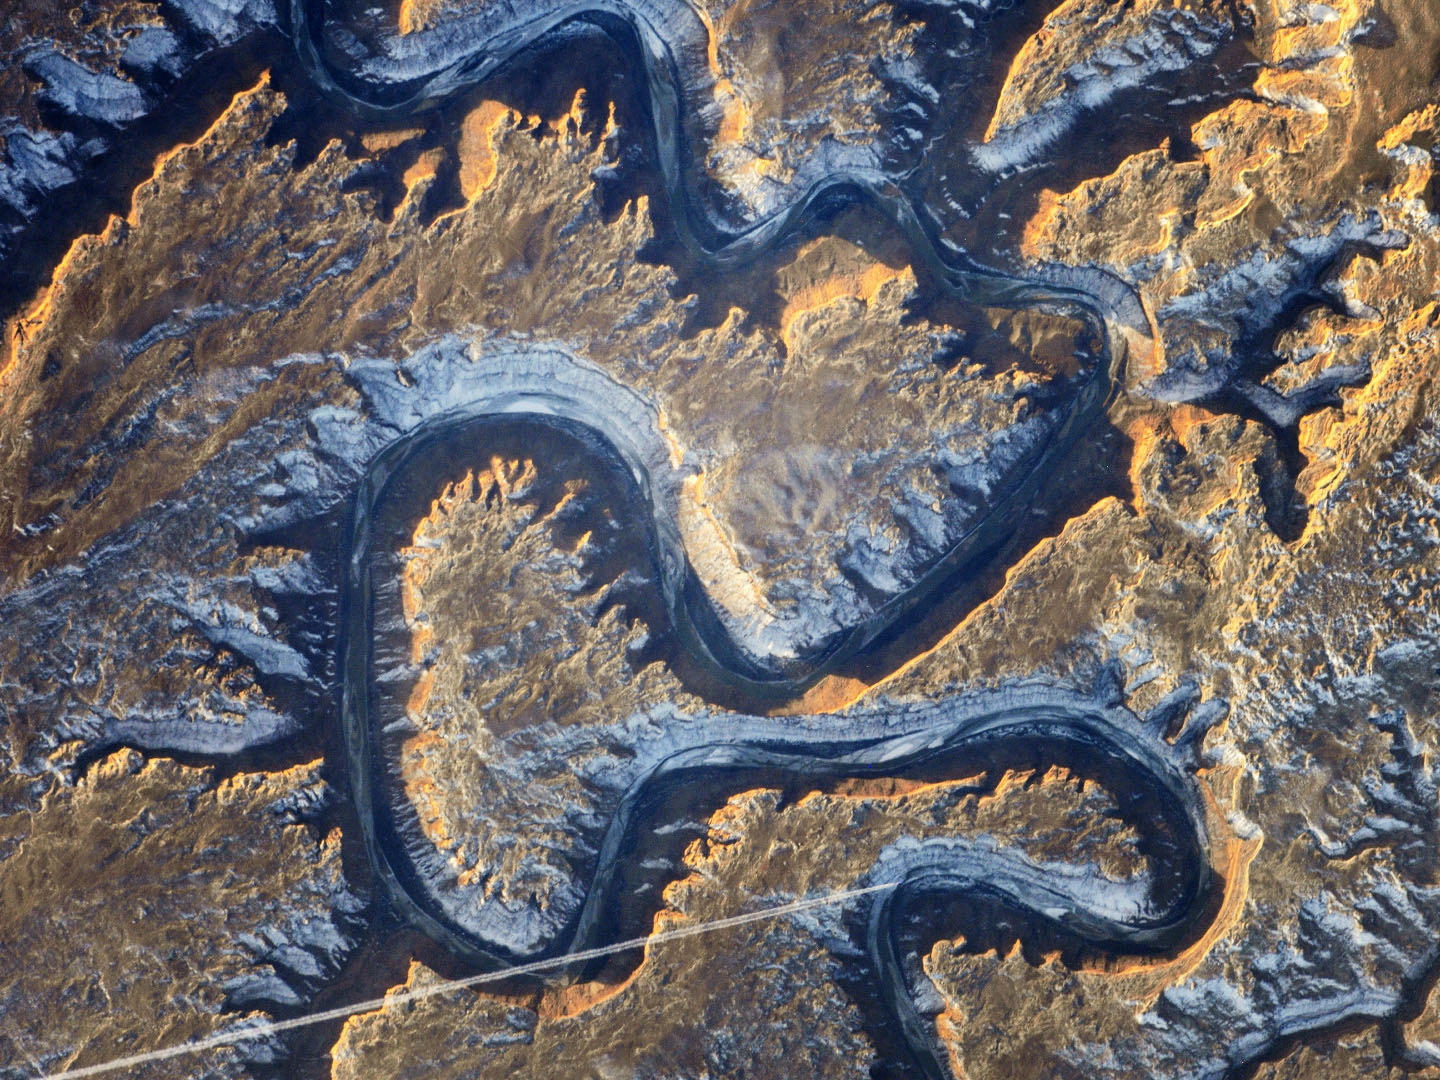 Best images of Earth in 2014